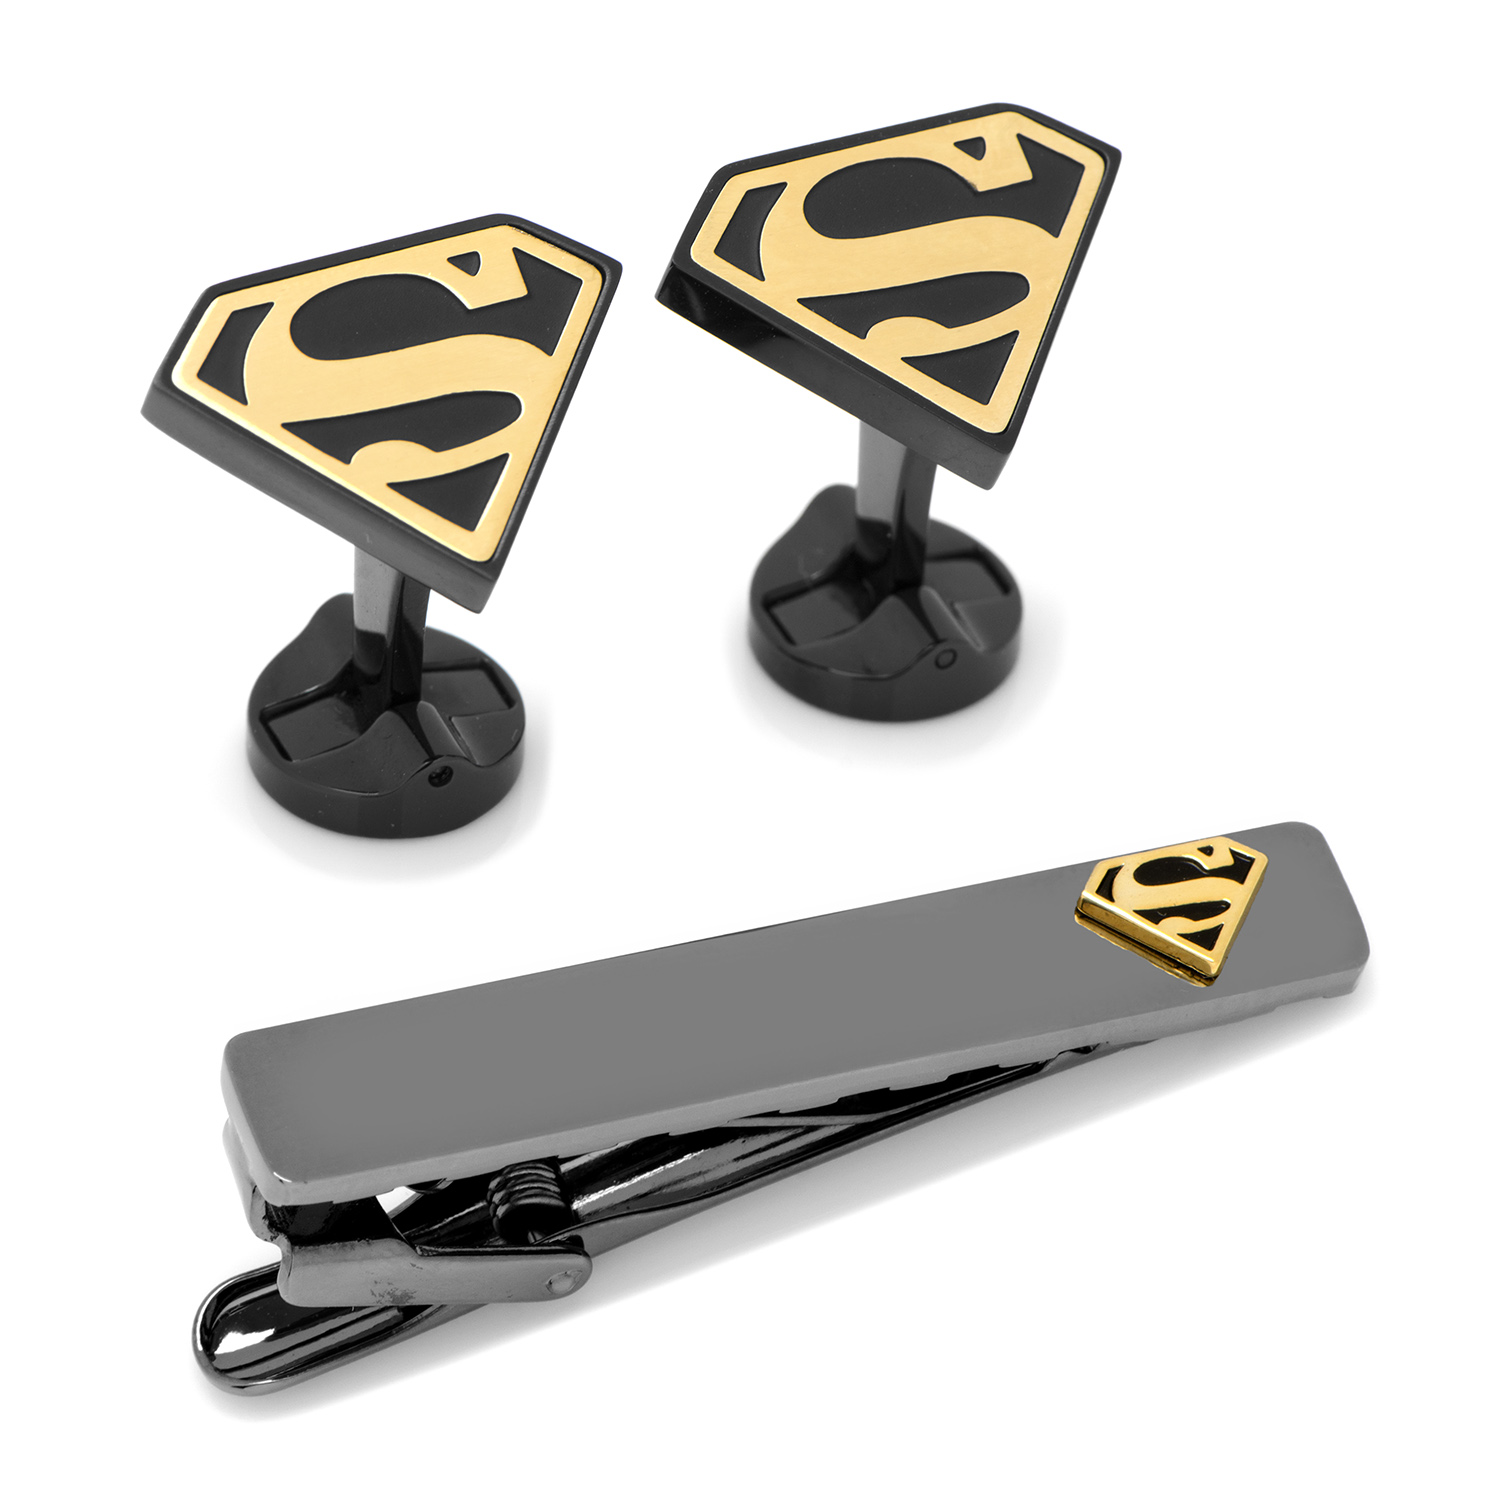 Superman Black and Gold Cufflinks and Tie Clip Gift Set